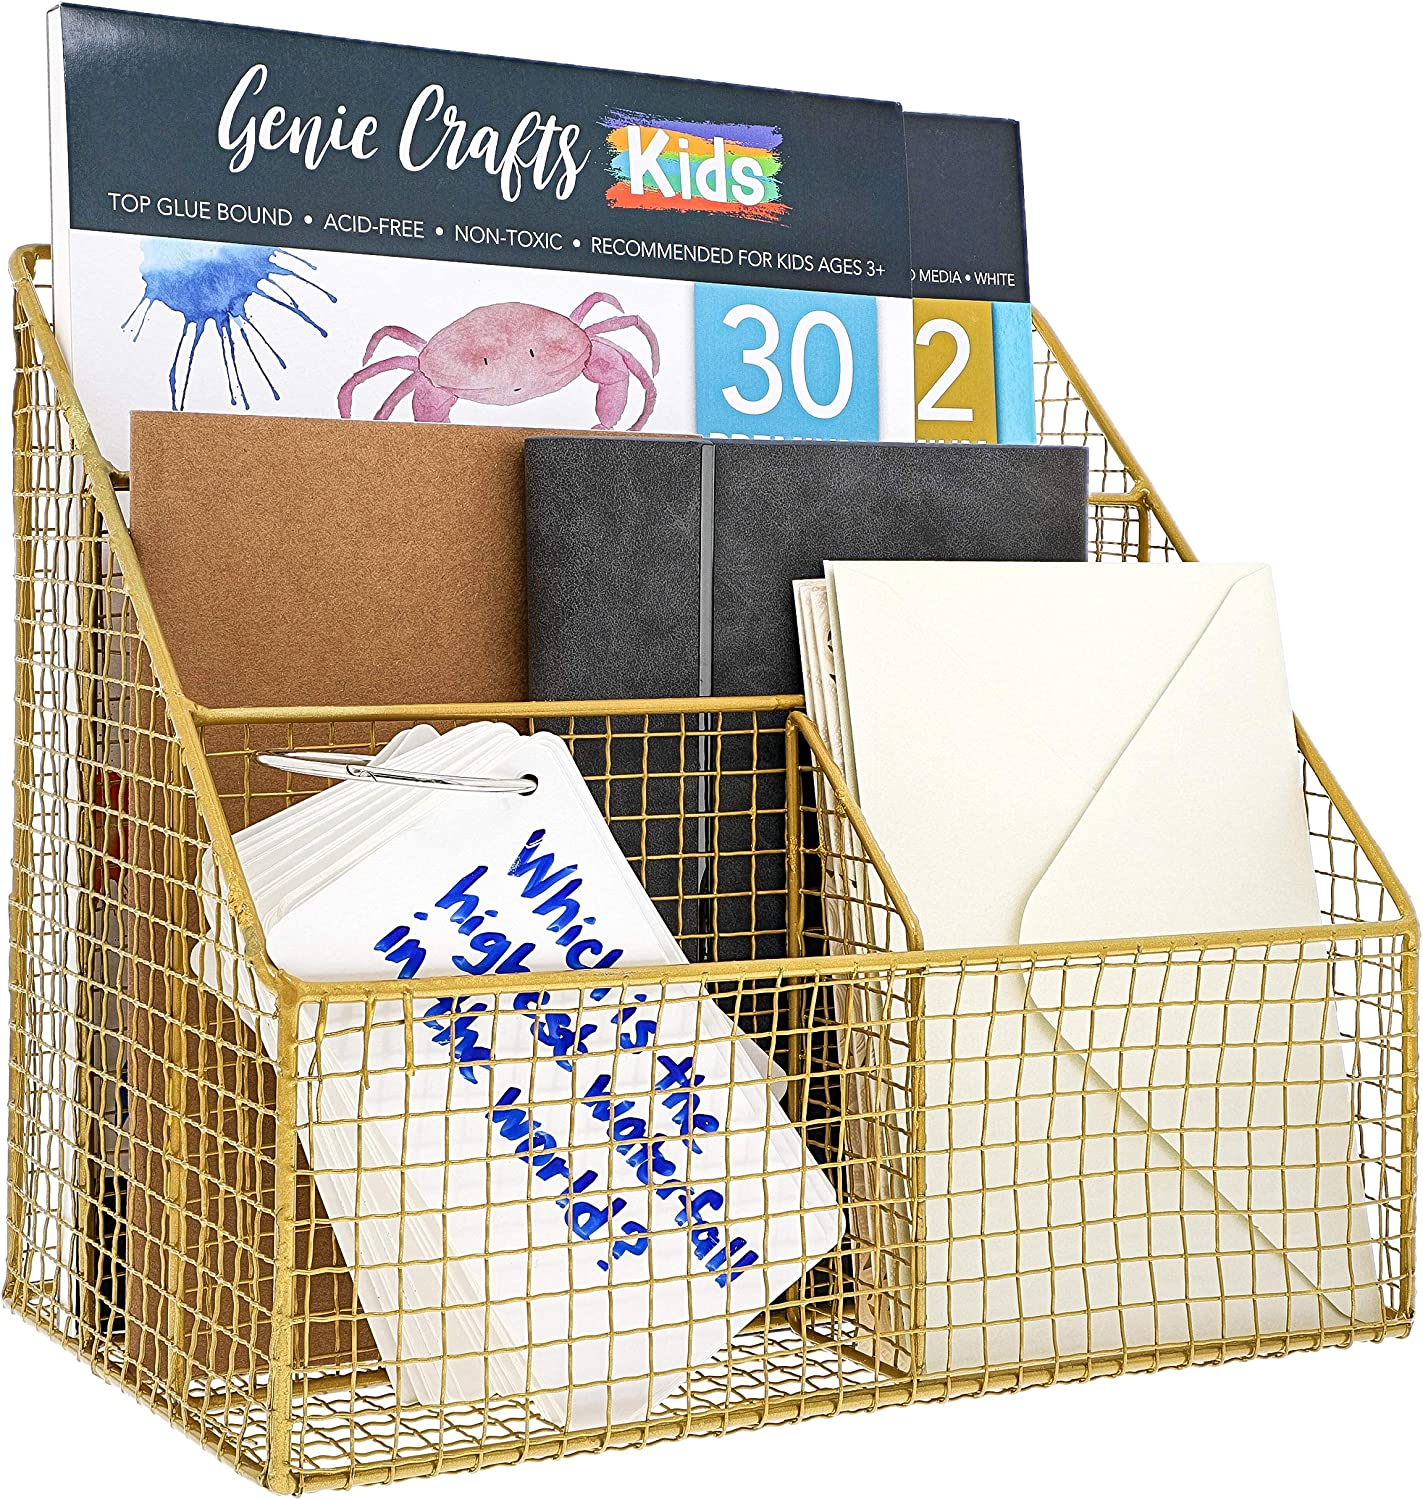 Paper Junkie Gold Desk File Organizer for Letters, Mail, and Accessories, 11.5 x 7 x 10 Inches